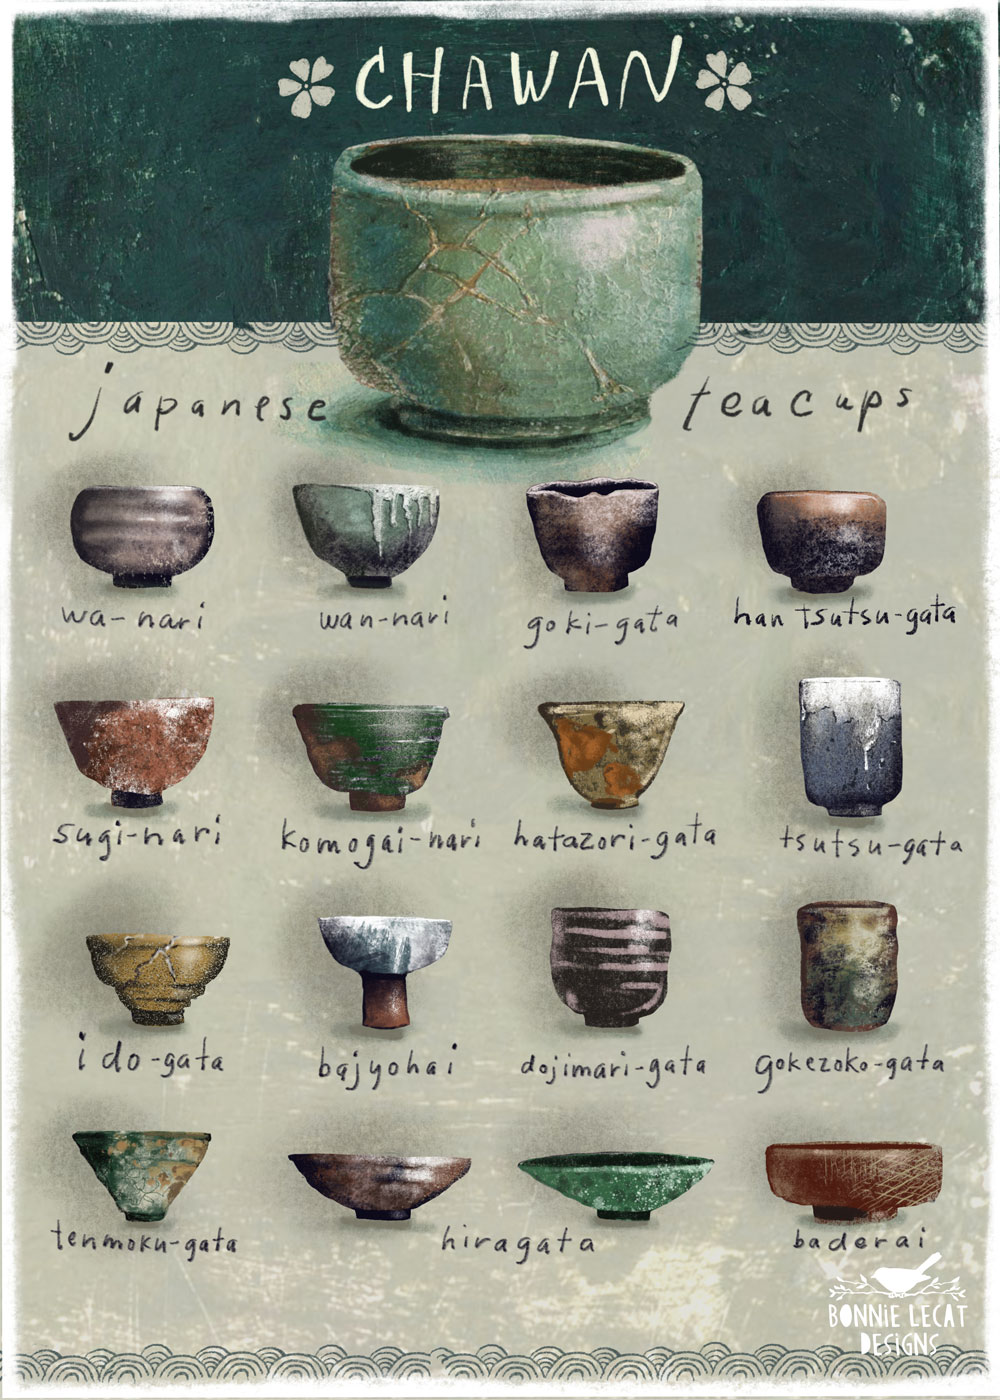 Japanese tea bowls illustration by Bonnie Lecat.